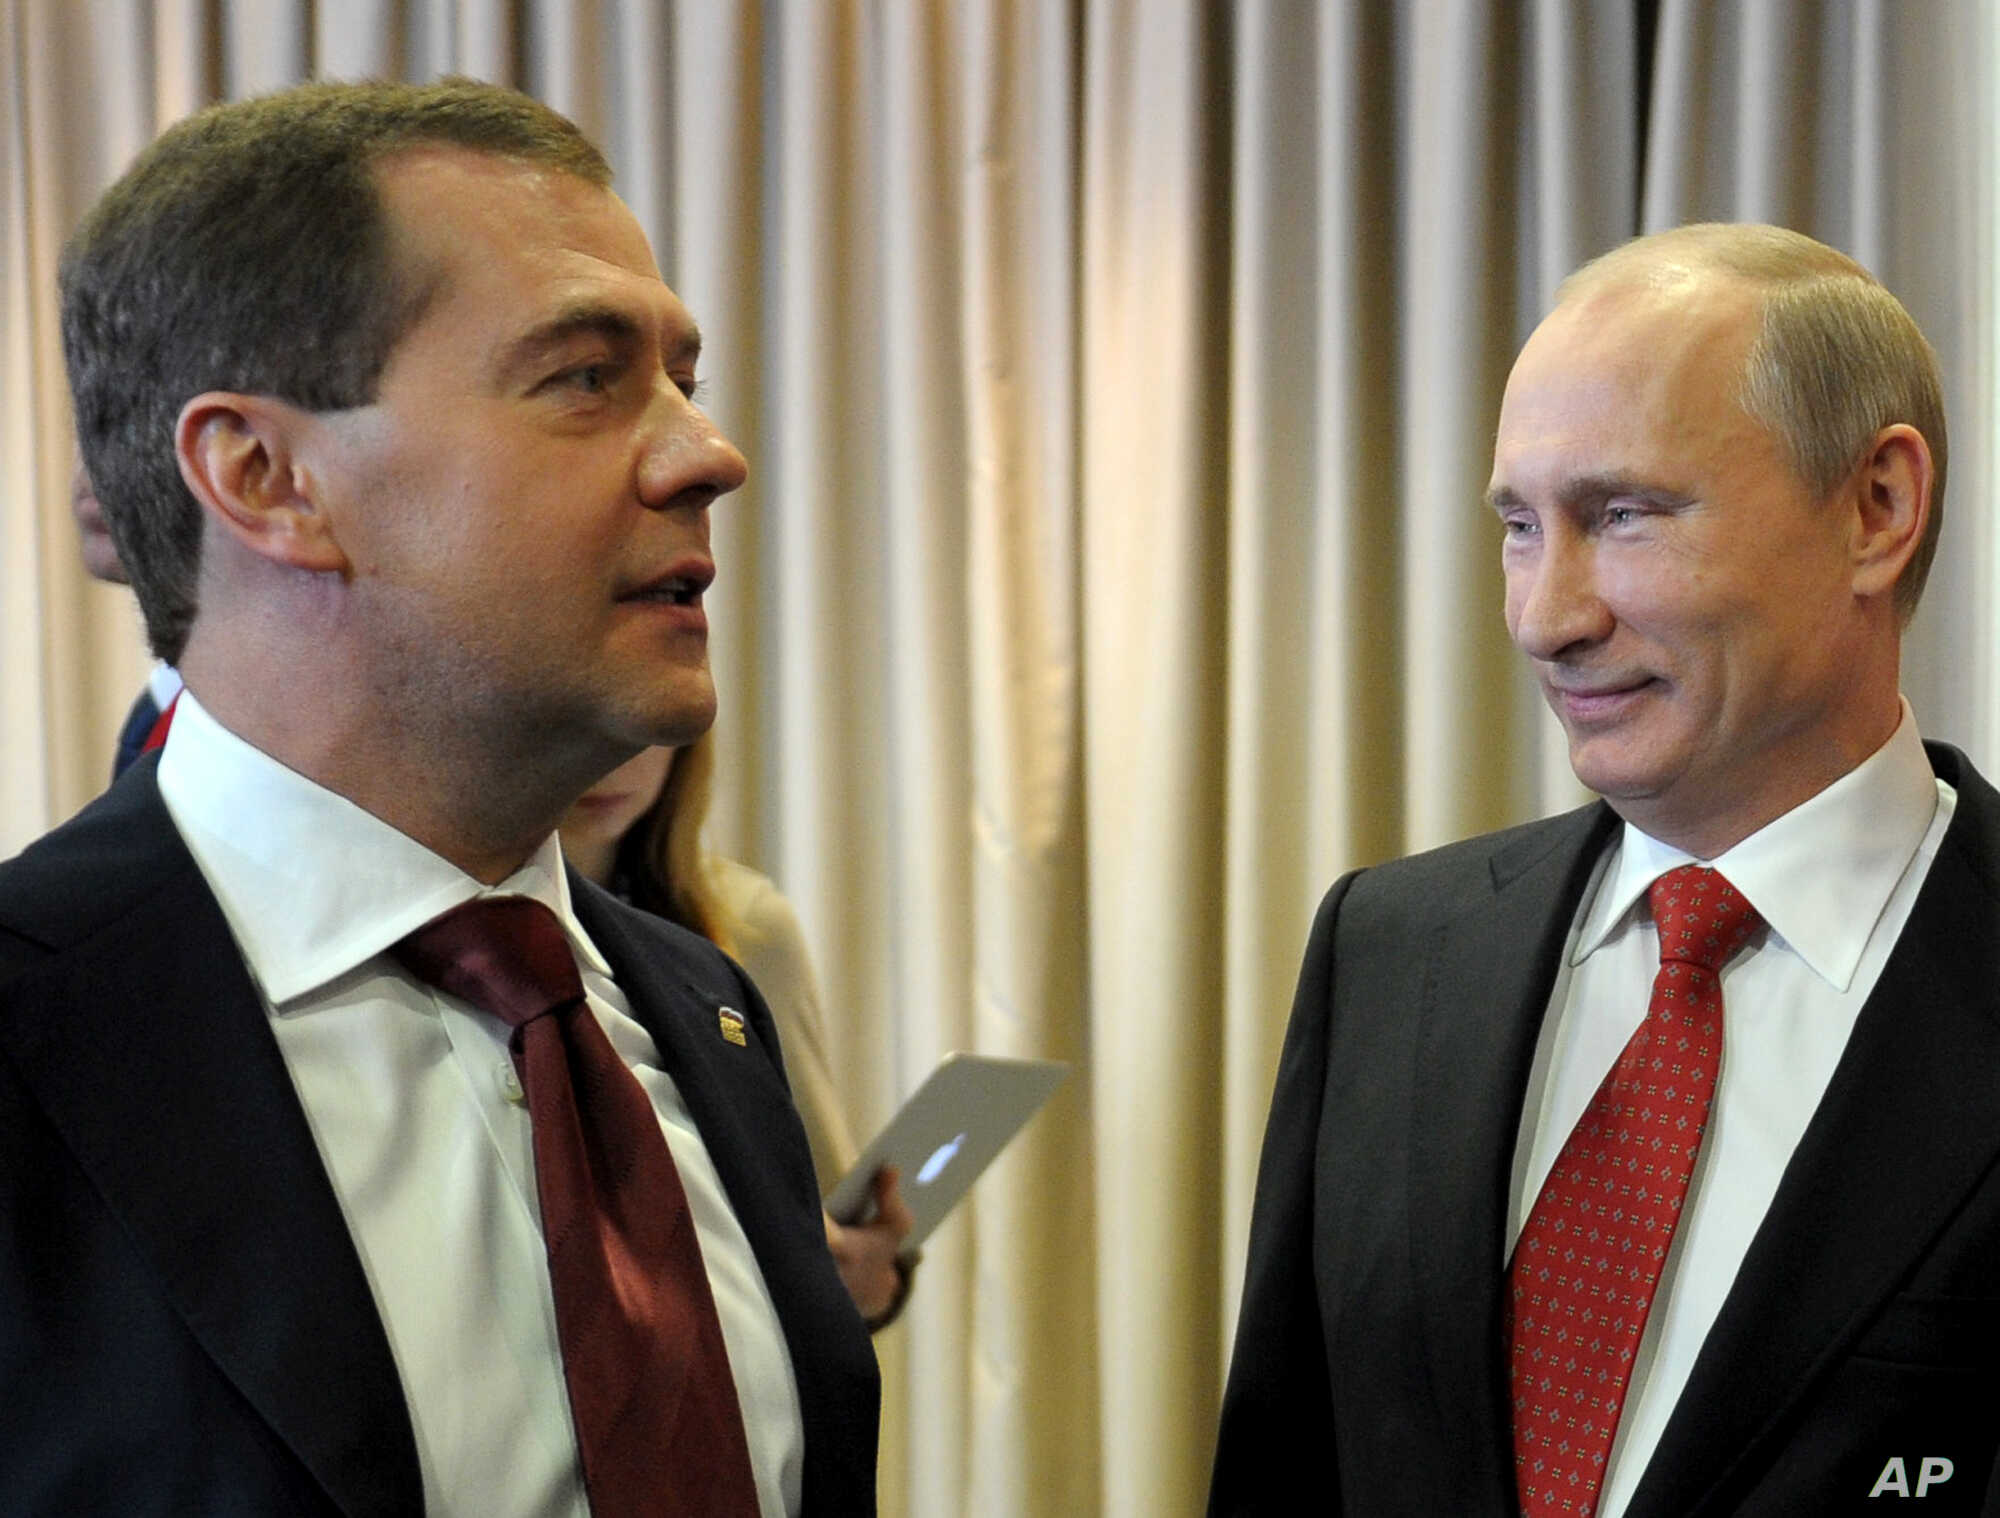 Russian President Vladimir Putin, right, and Prime Minister Dmitry Medvedev attend the United Russia party annual congress in Moscow, May 26, 2012.